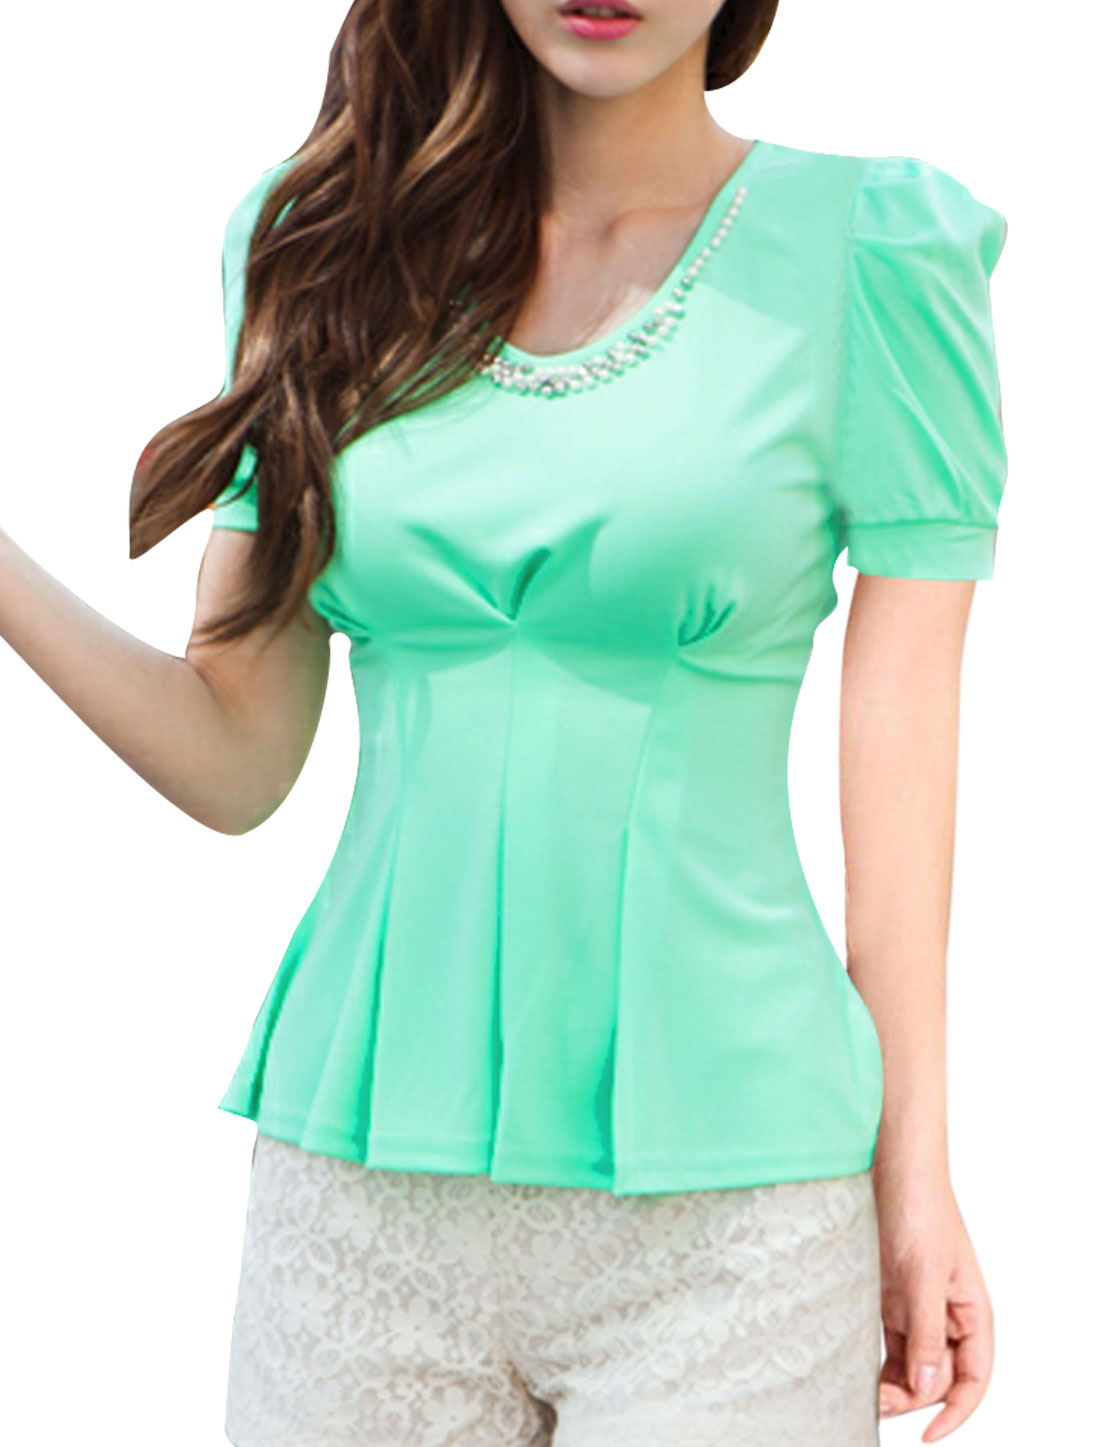 Women's Stretchy Round Neck Pearl Decor Short Puff Sleeve Tunic Shirt Green XS